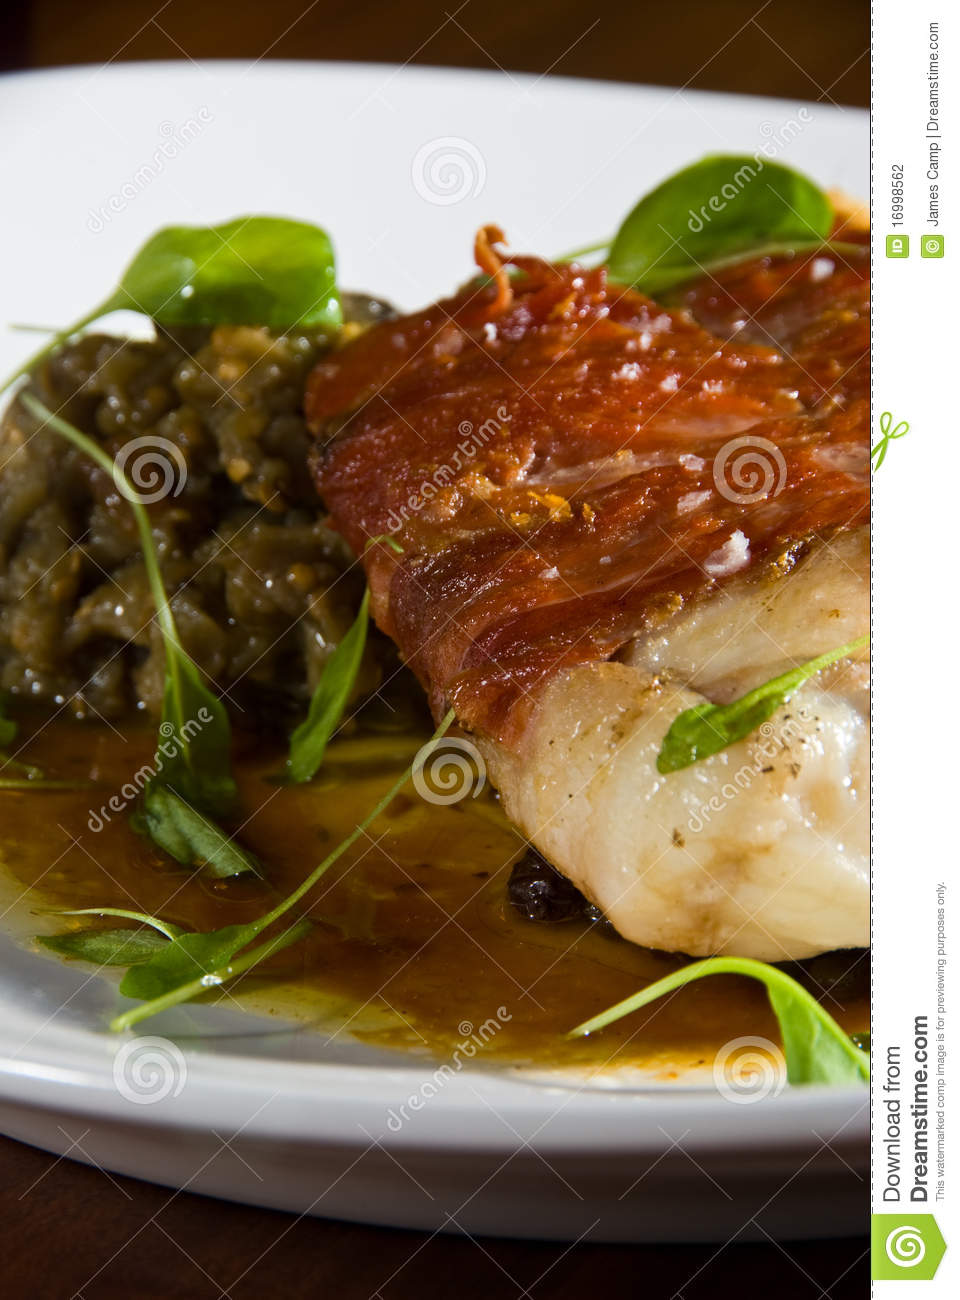 Bacon wrapped fish stock photography image 16998562 for Bacon wrapped fish